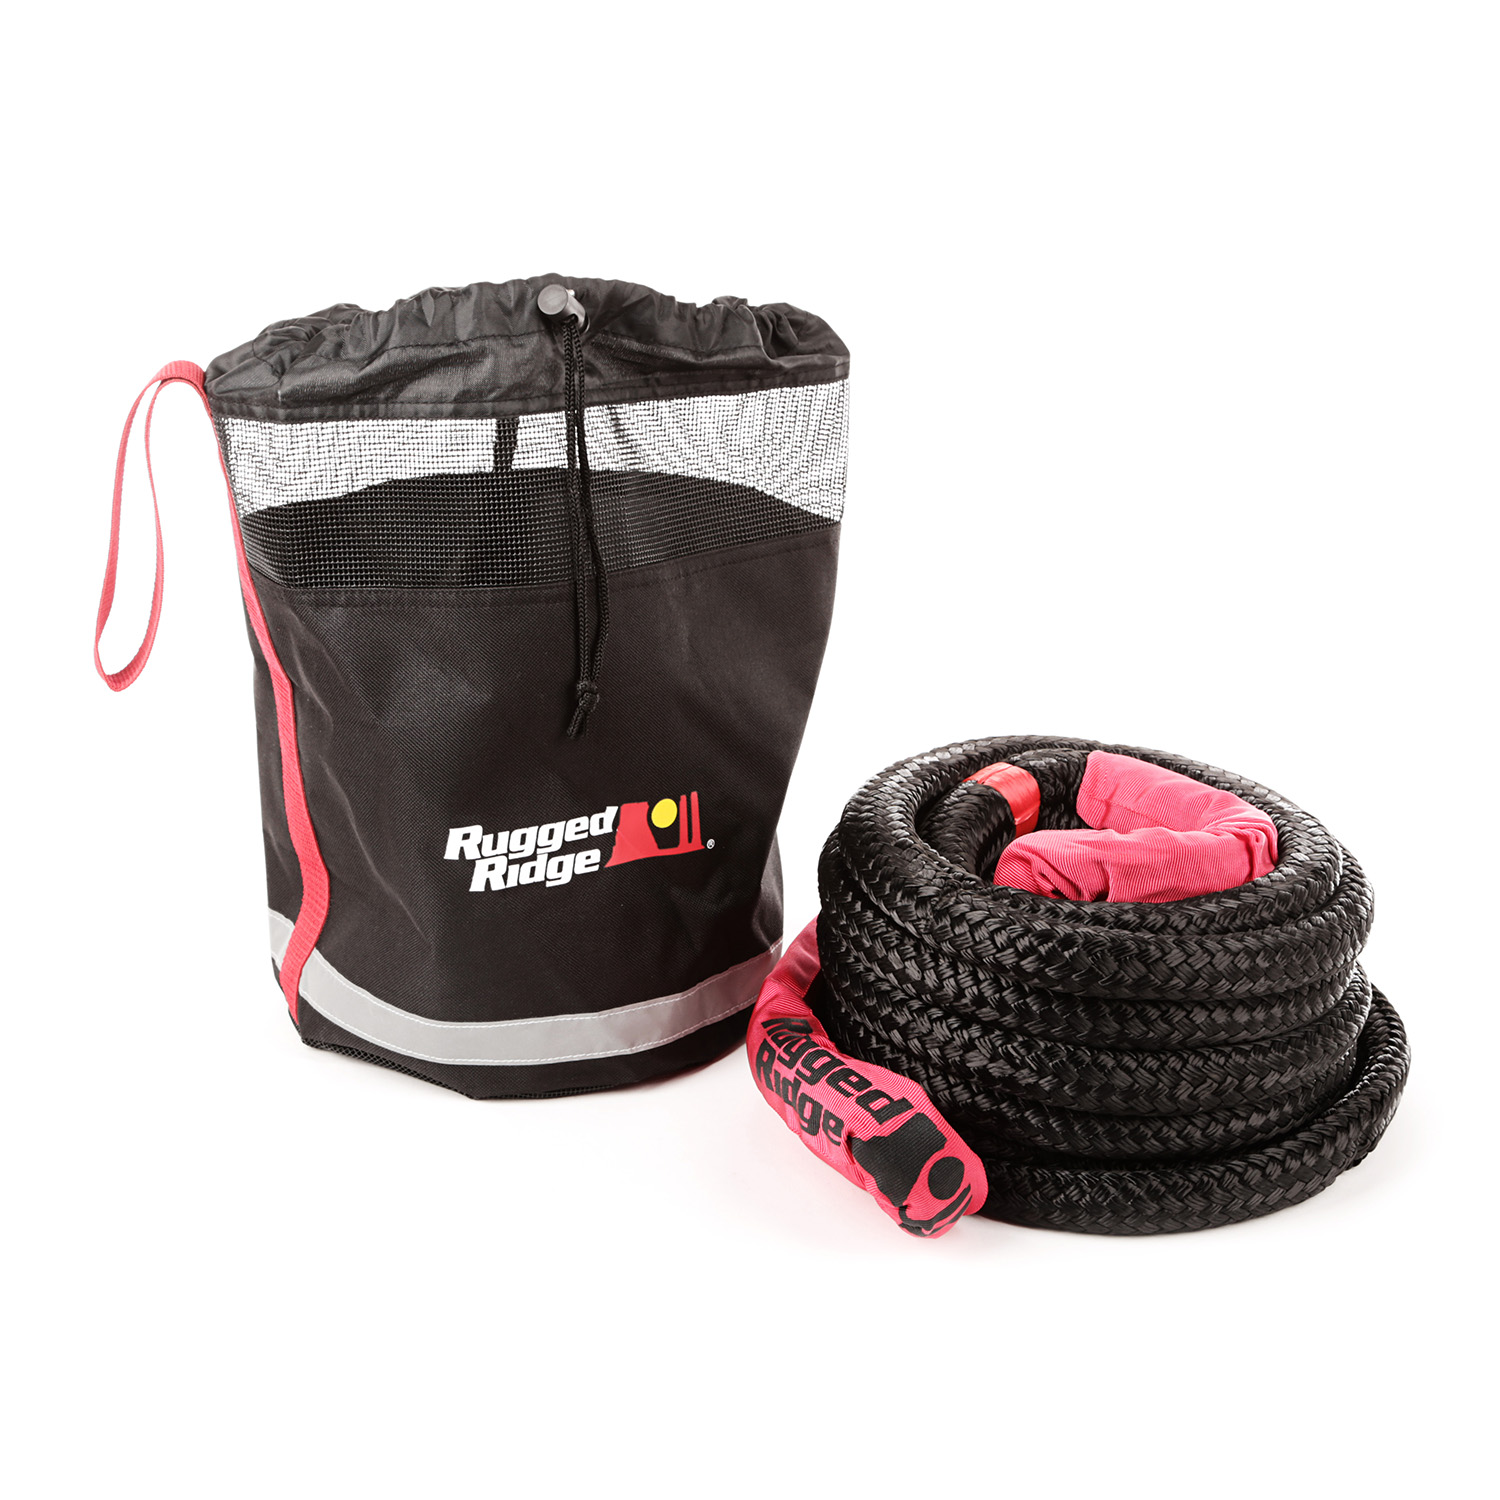 Rugged Ridge Kinetic Recovery Rope with Cinch Storage Bag